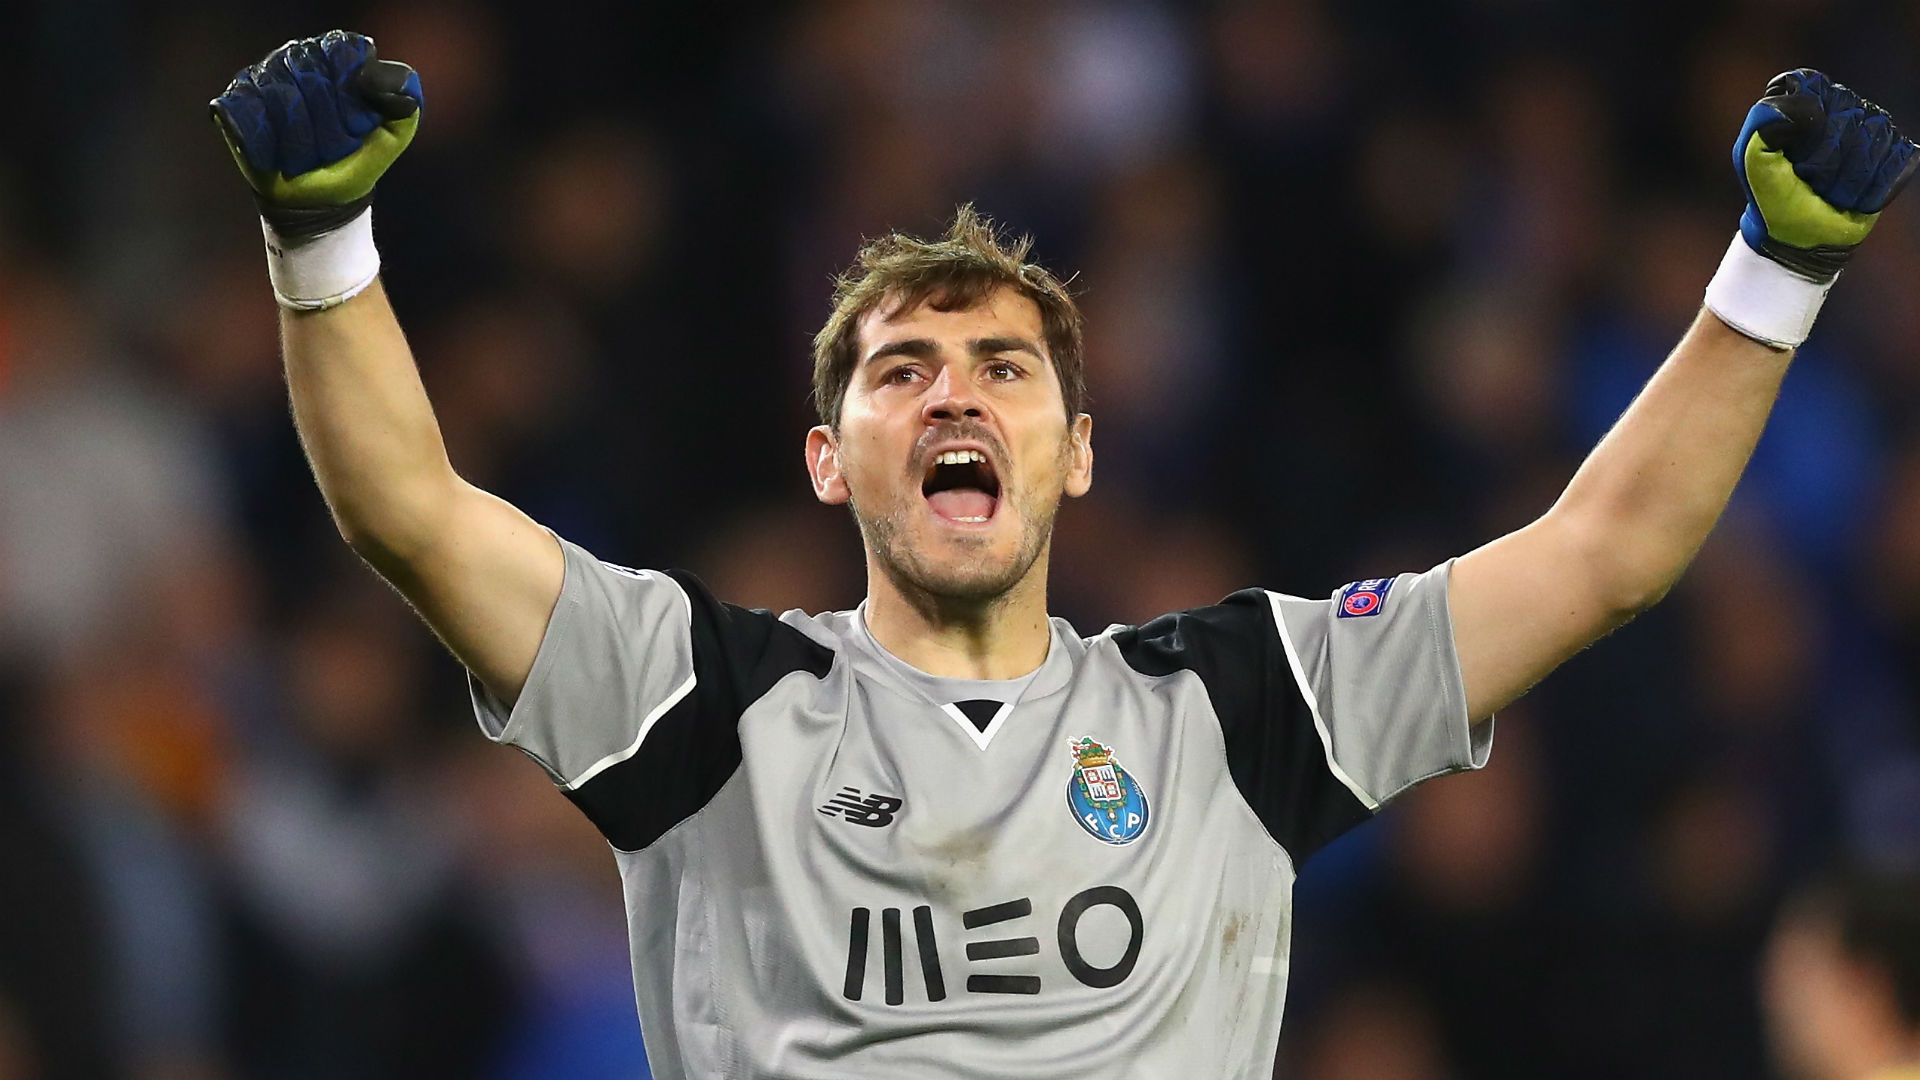 Iker Casillas news: Real Madrid great denies retirement reports | Goal.com